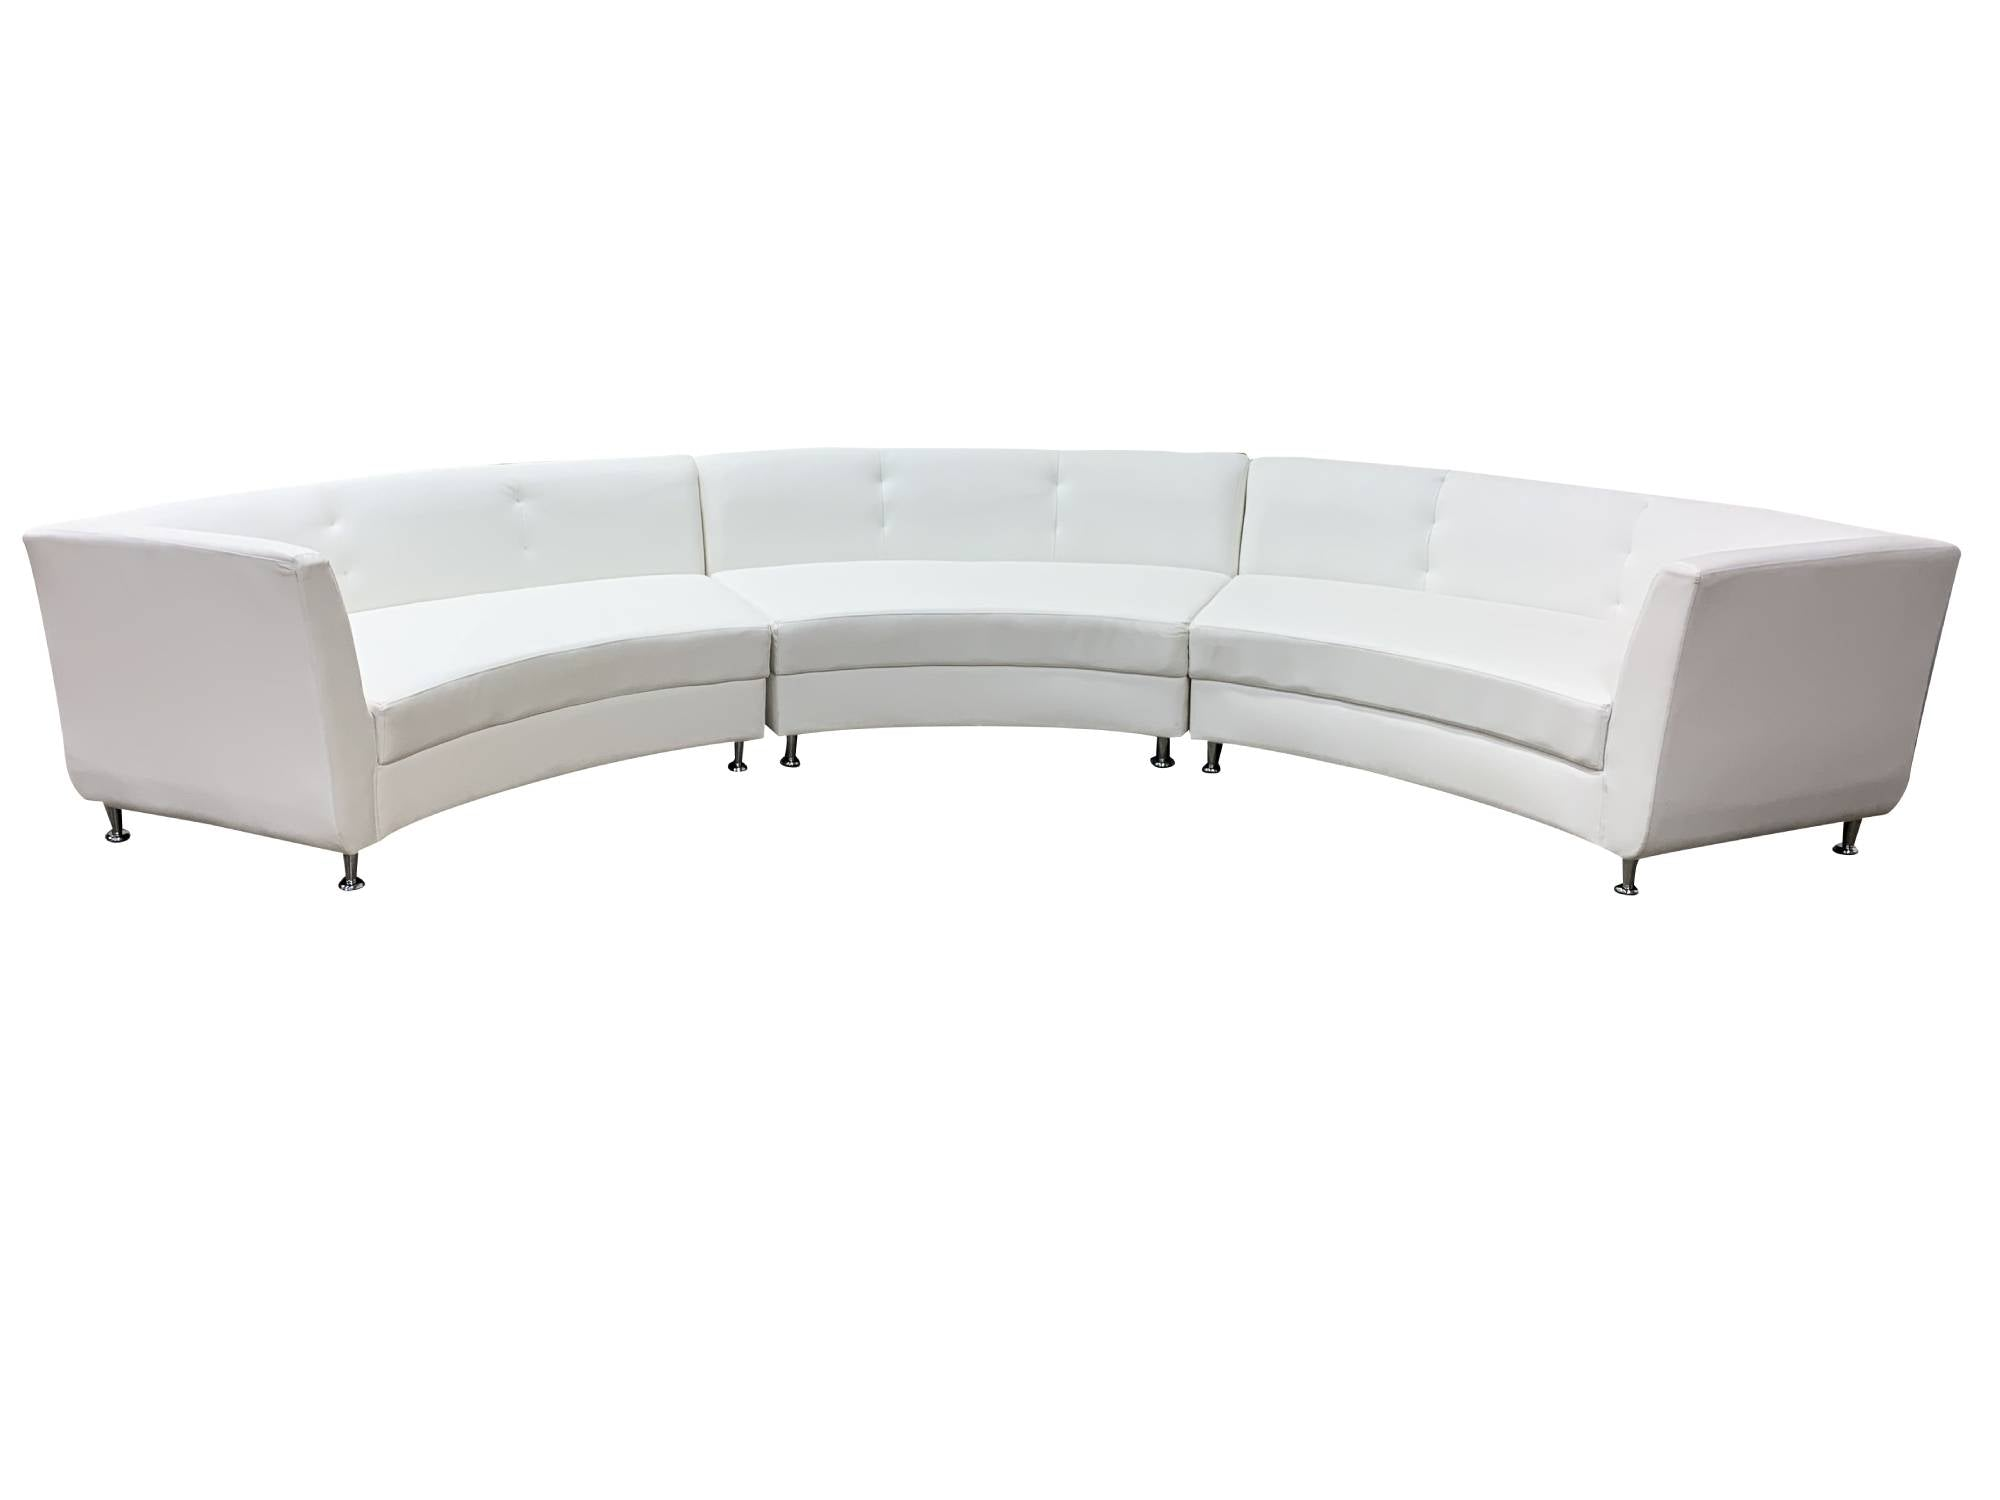 LUXURY 3PC CURVED SOFA - WHITE